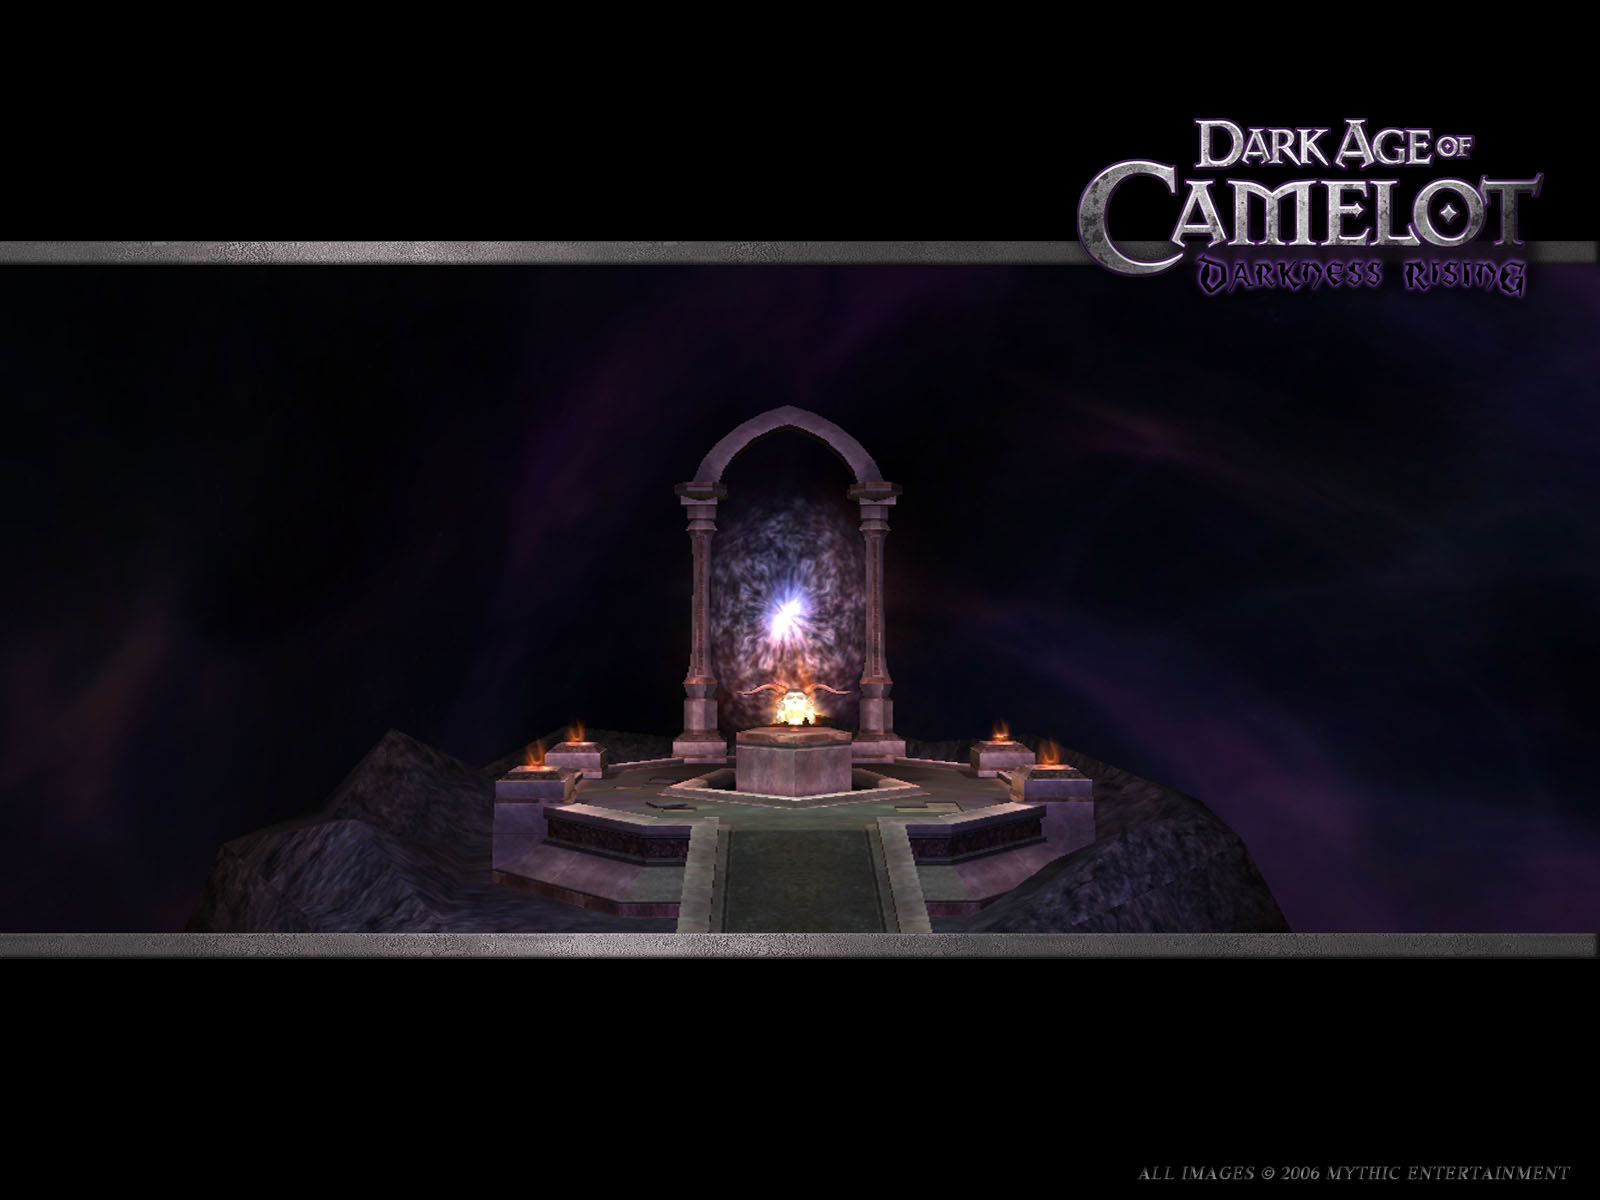 Dark Age Of Camelot Darkness Rising 2005 Promotional Art